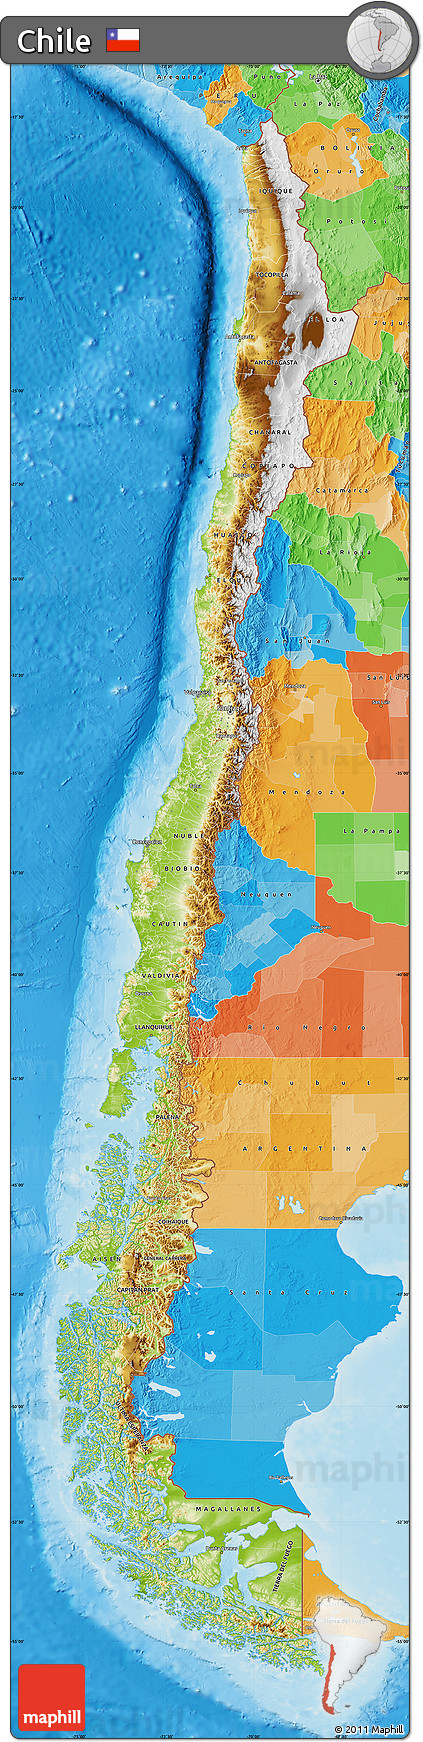 Free Physical Map Of Chile Political Outside Shaded Relief Sea - Chile physical map